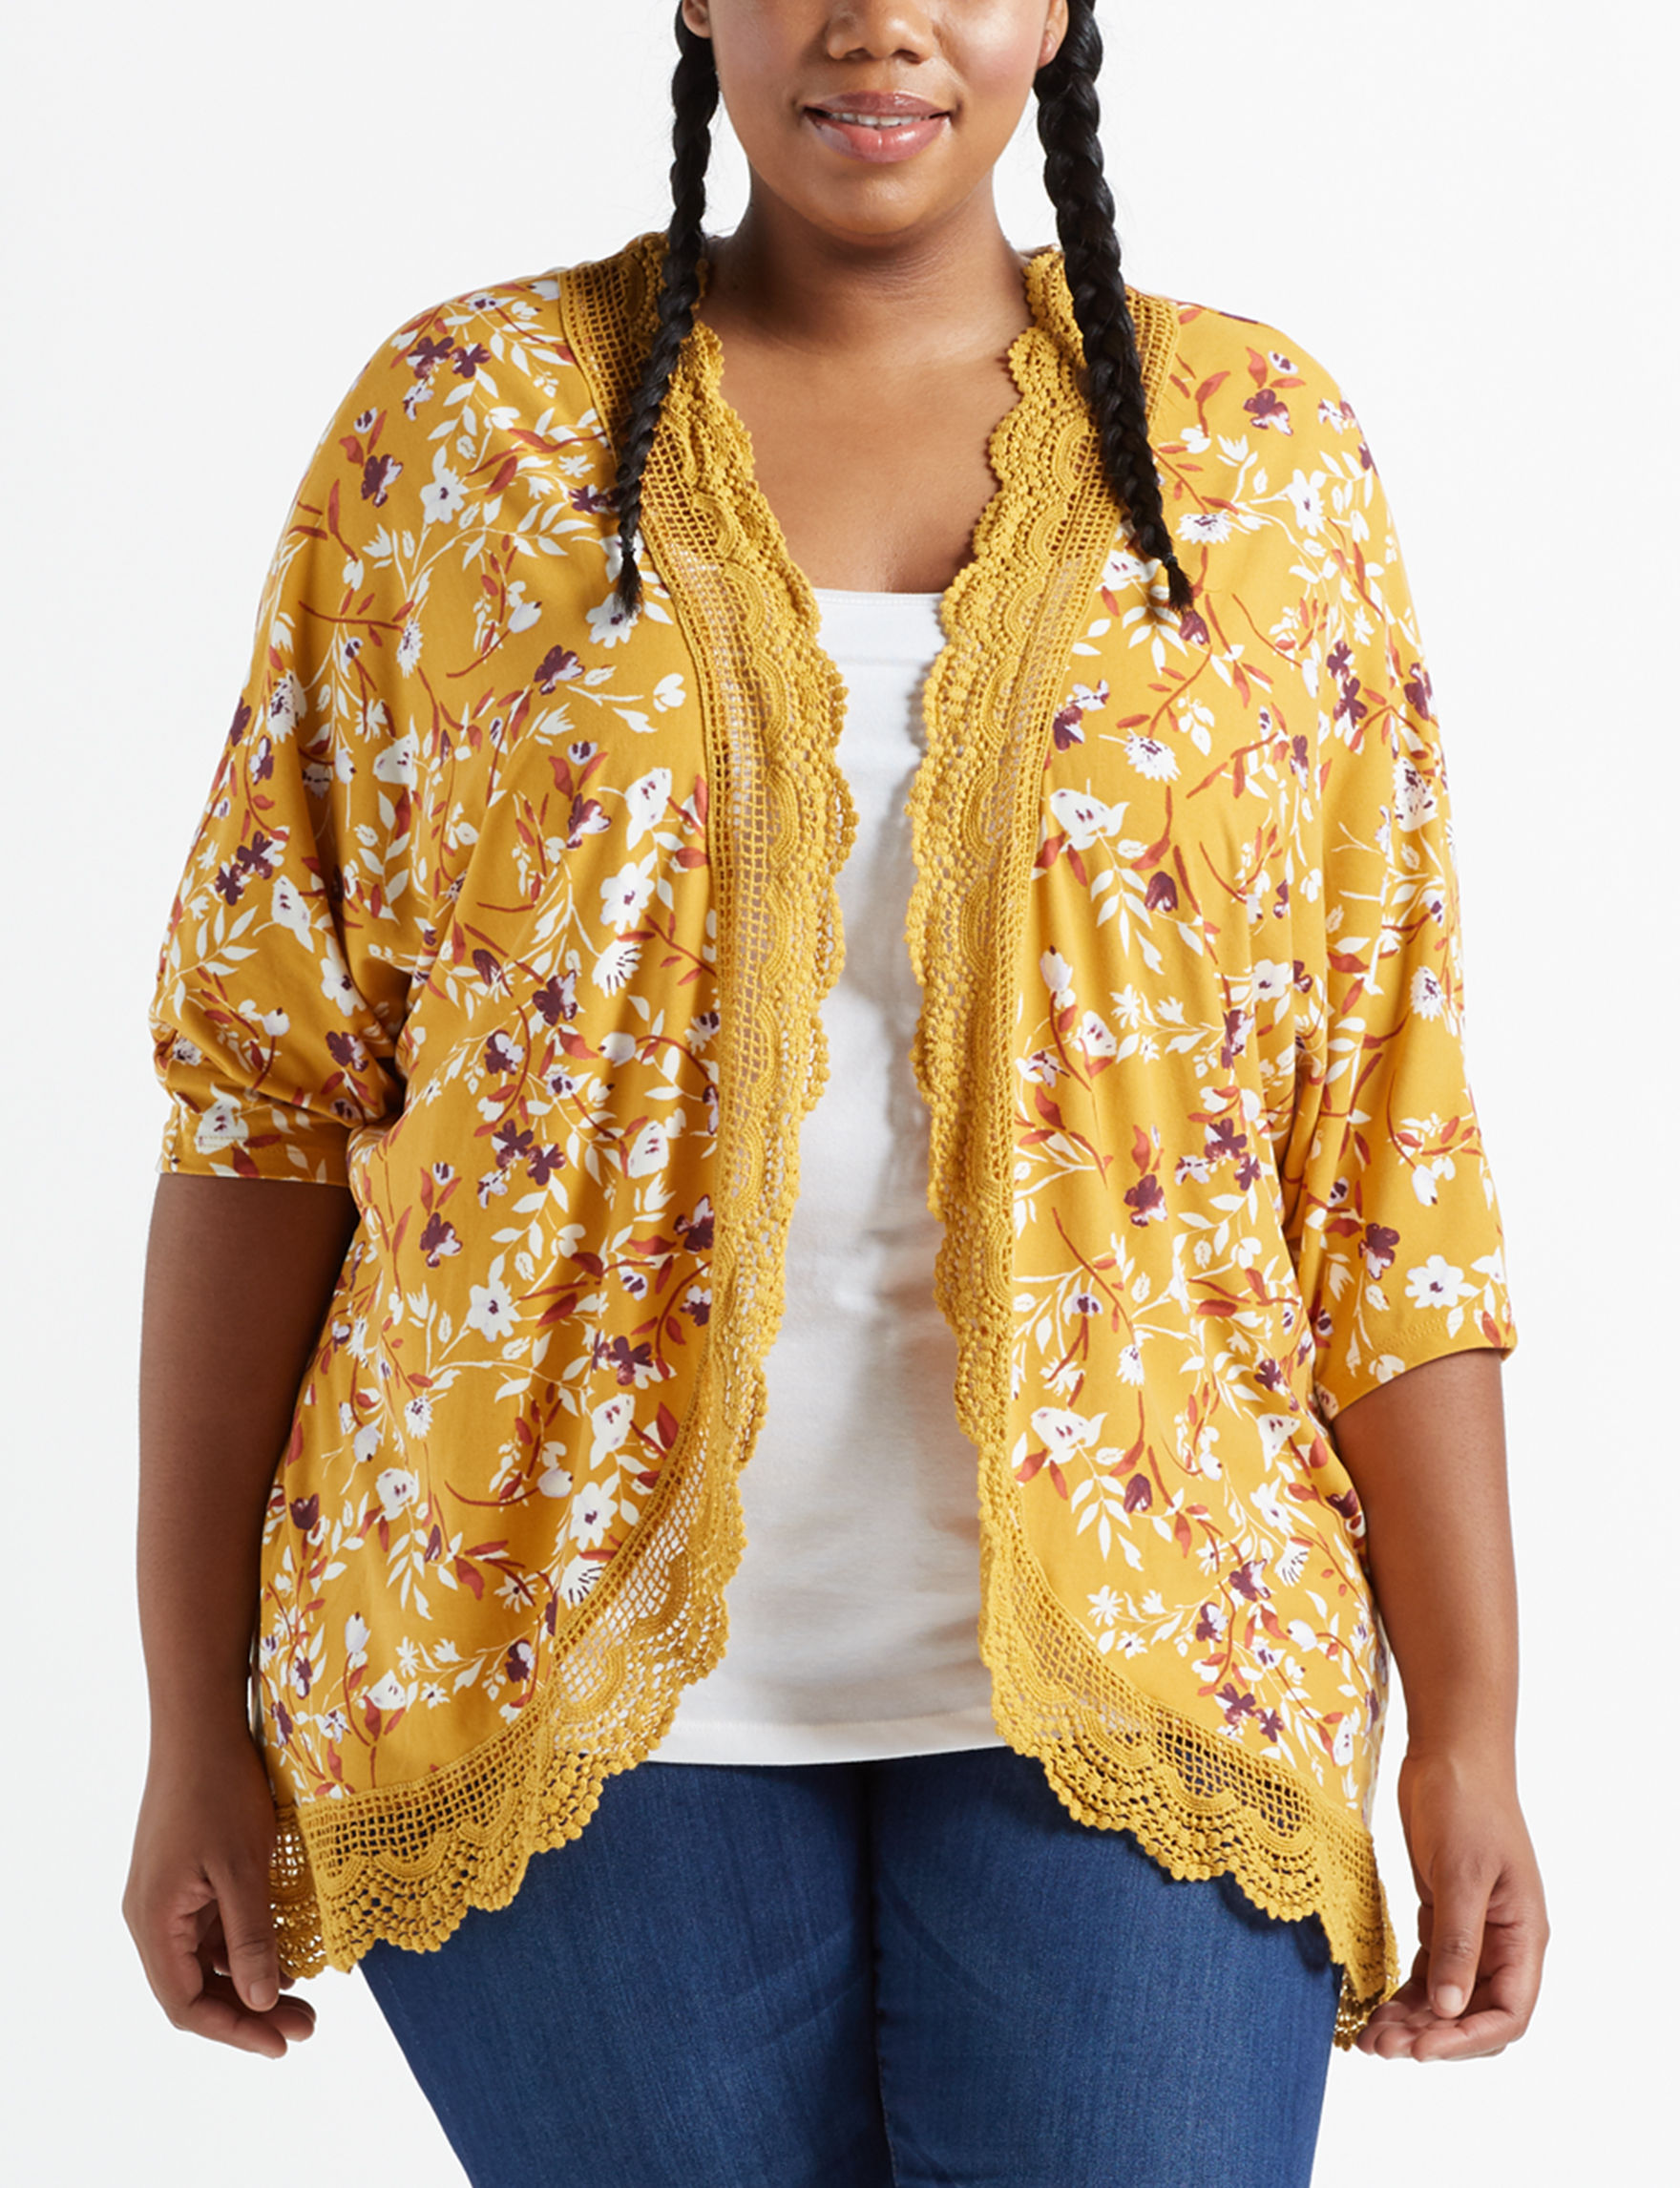 Justify Mustard Kimonos & Toppers